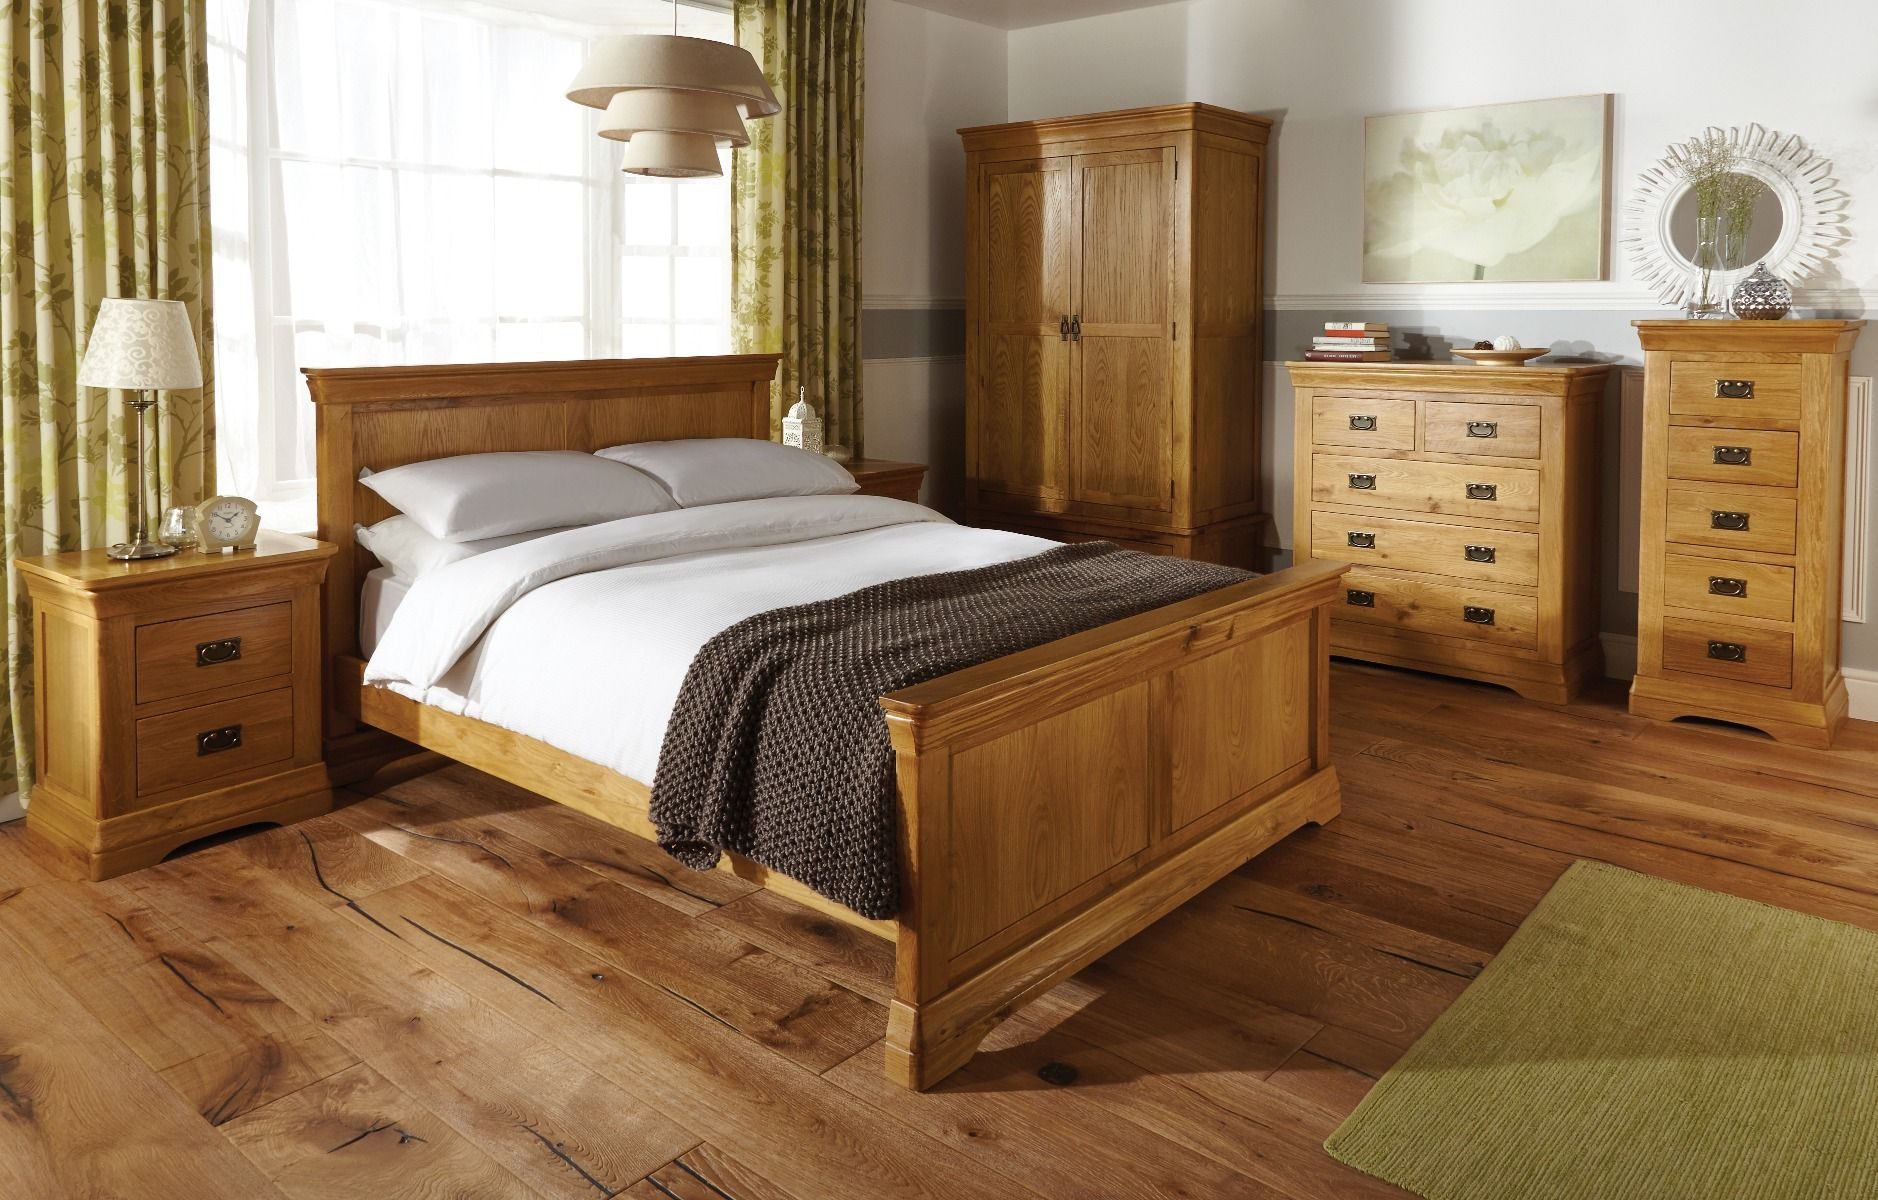 Farmhouse Country Oak Double Bed 11ft 11 inches - WINTER SALE